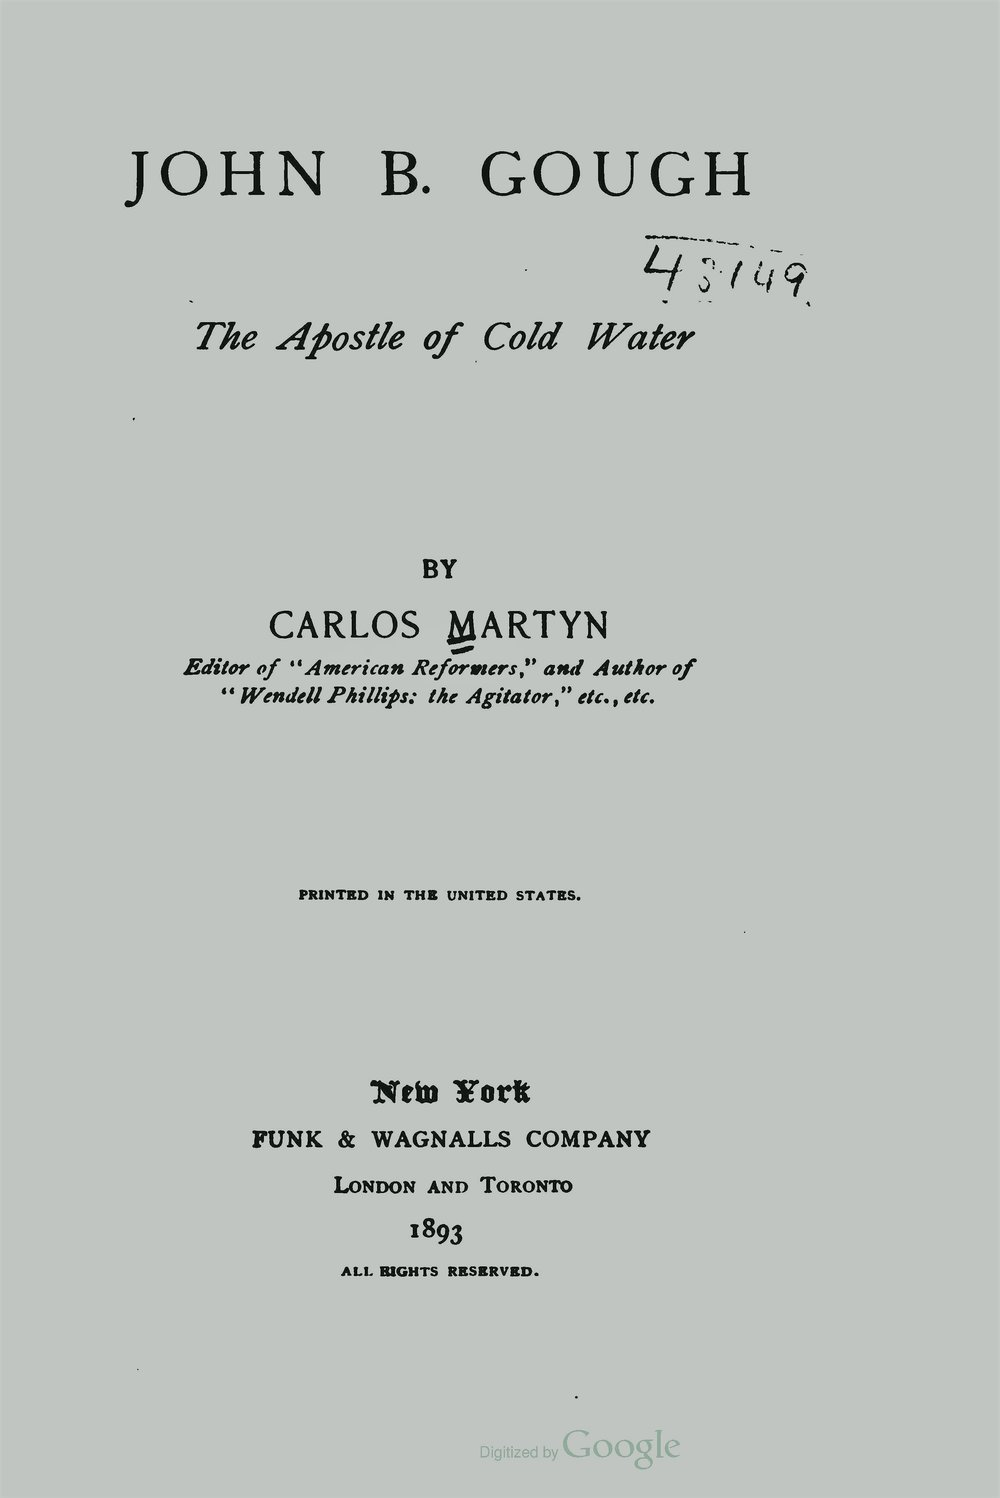 Martyn, William Carlos, John B Gough The Apostle of Cold Water Title Page.jpg